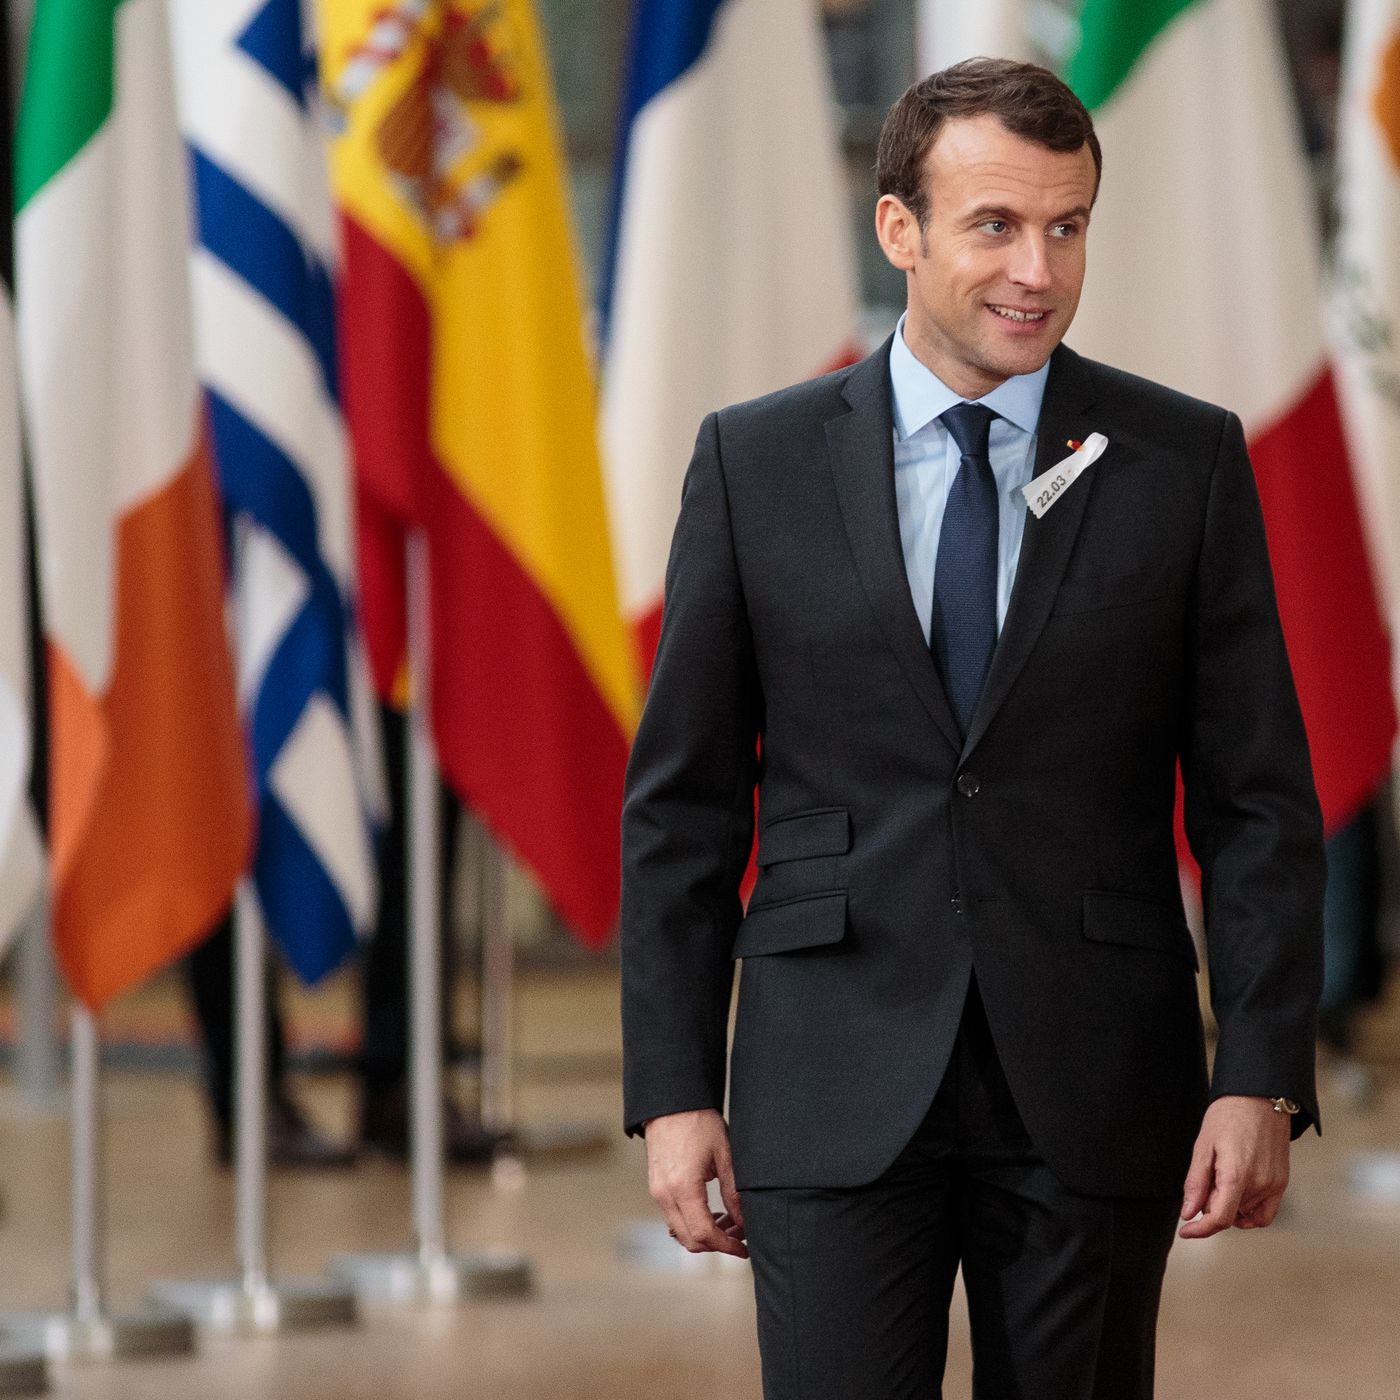 Badly Implemented Ai Could Jeopardize Democracy Says French President Emmanuel Macron The Verge